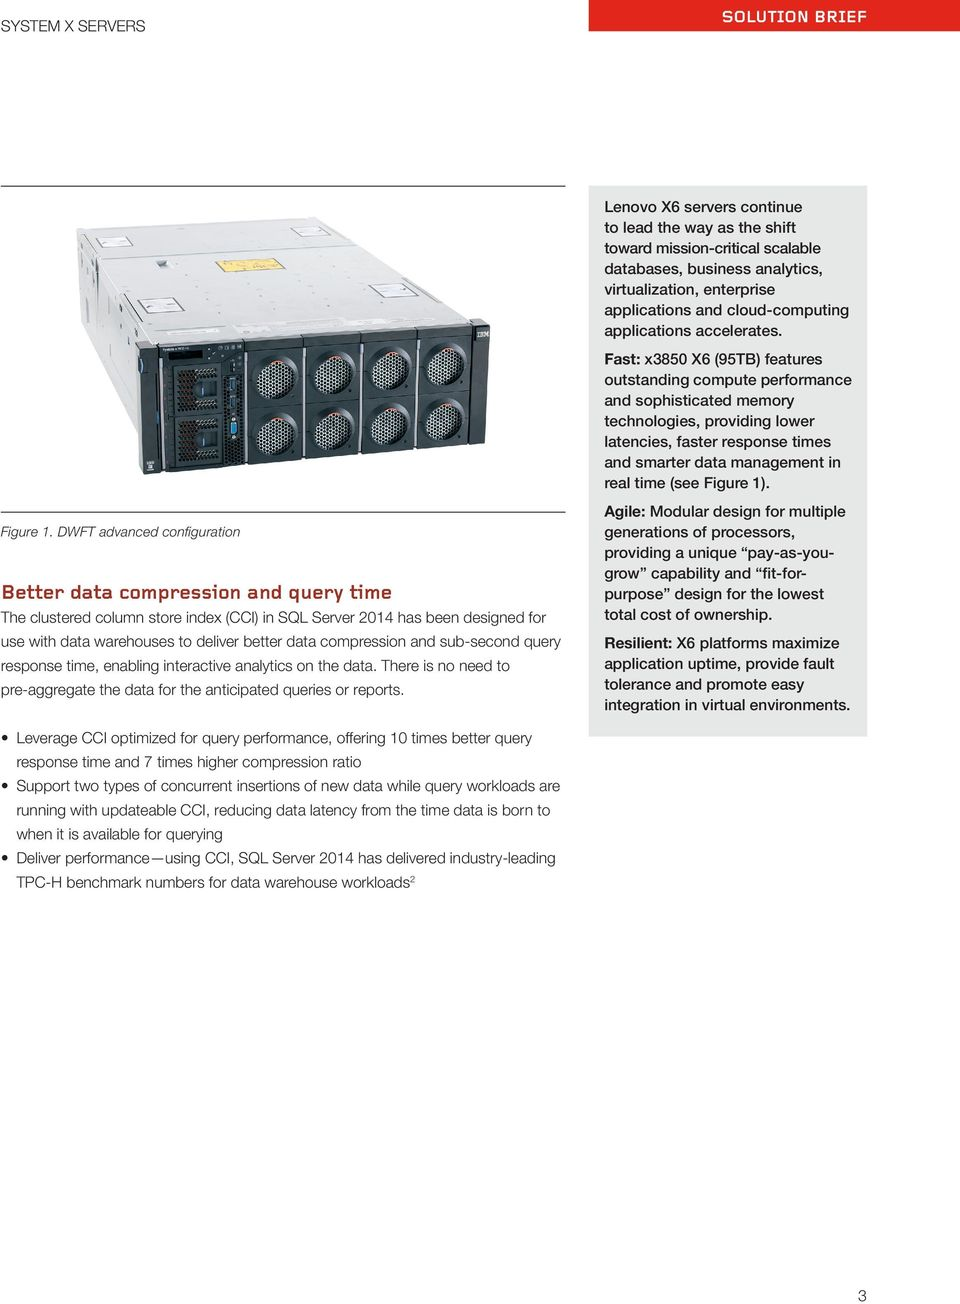 Fast: x3850 X6 (95TB) features outstanding compute performance and sophisticated memory technologies, providing lower latencies, faster response times and smarter data management in real time (see